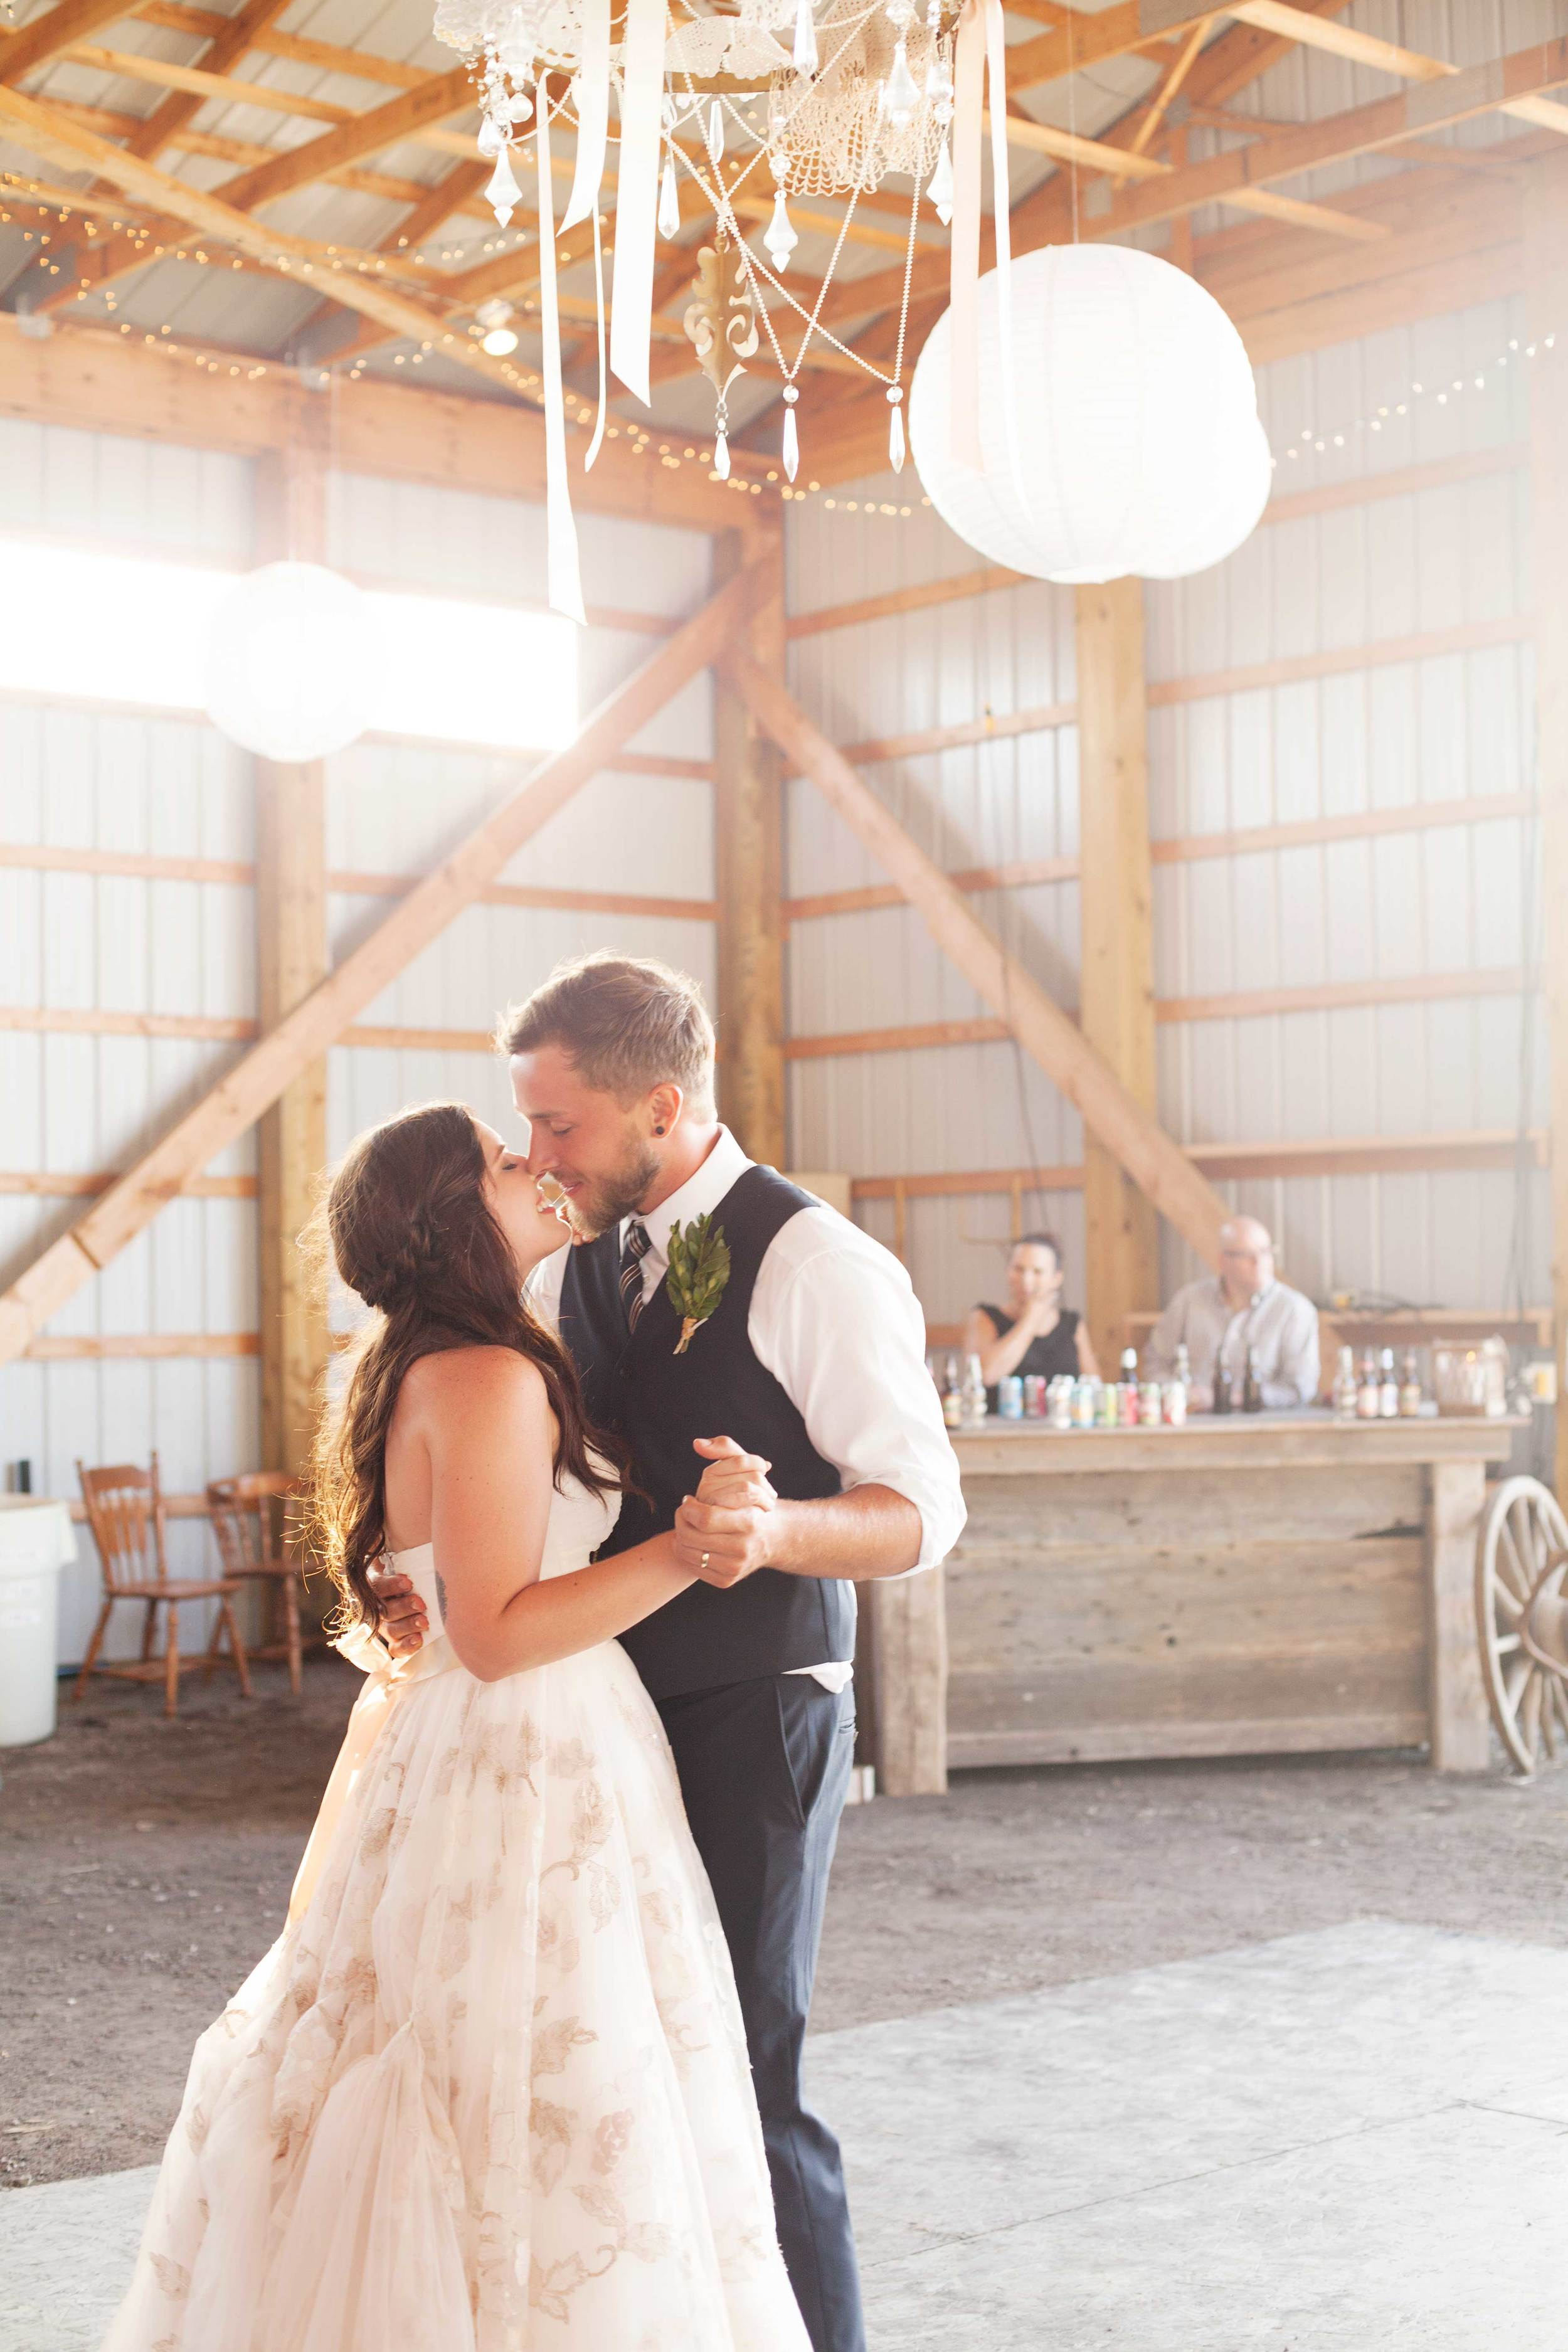 Justin-&-Jenna-Married-715.jpg